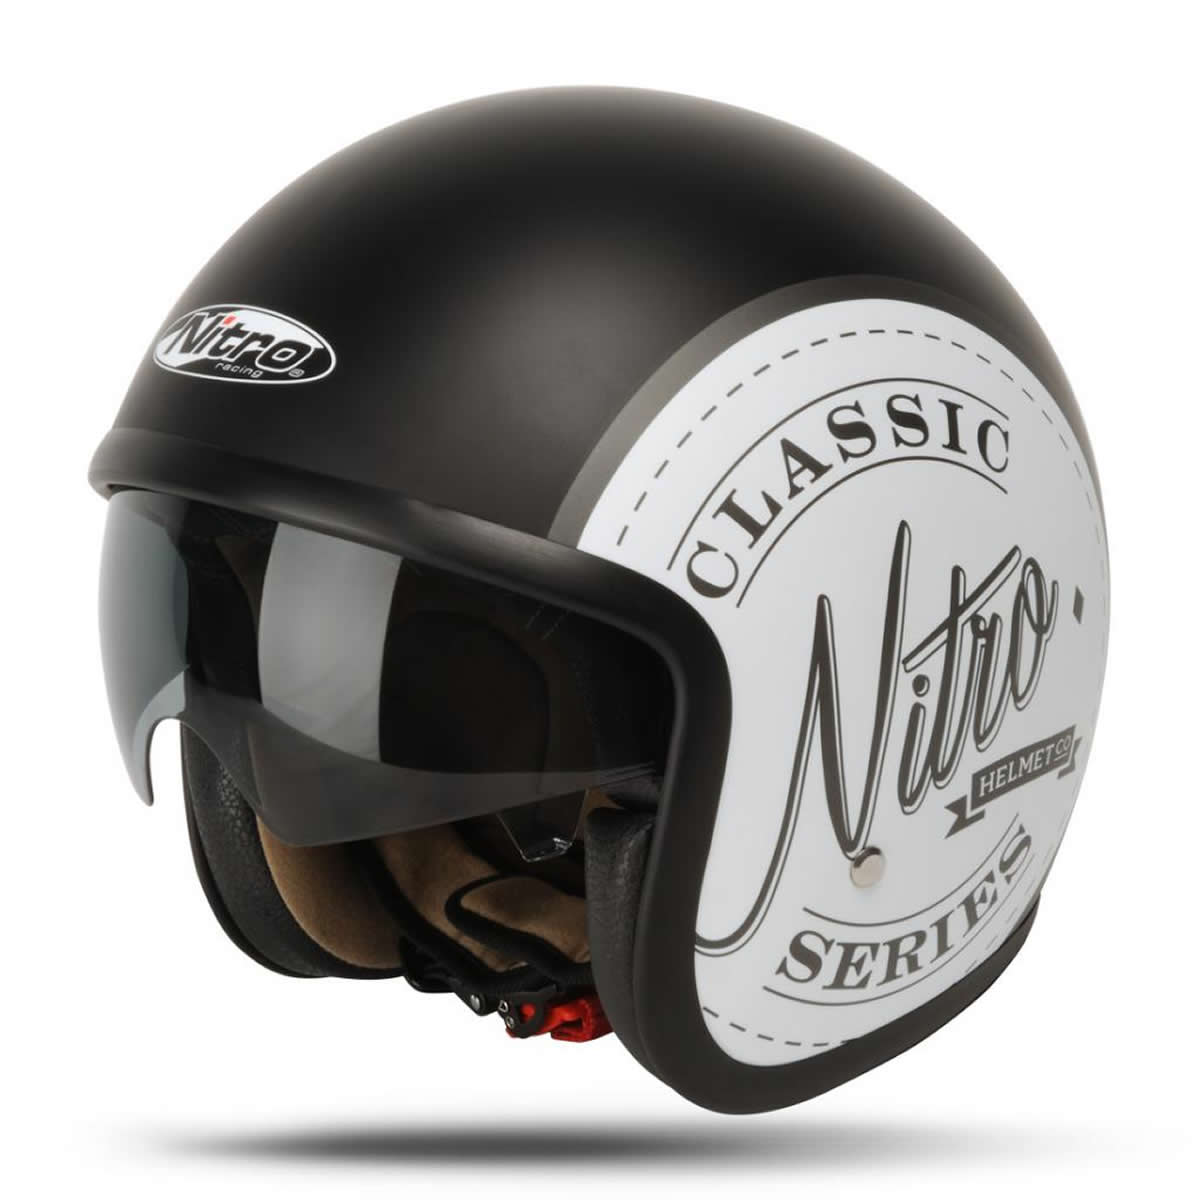 NITRO X DECAL CLASSIC OPEN FACE SUN SHIELD SCOOTER MOD BIKE - Motorcycle helmet decal